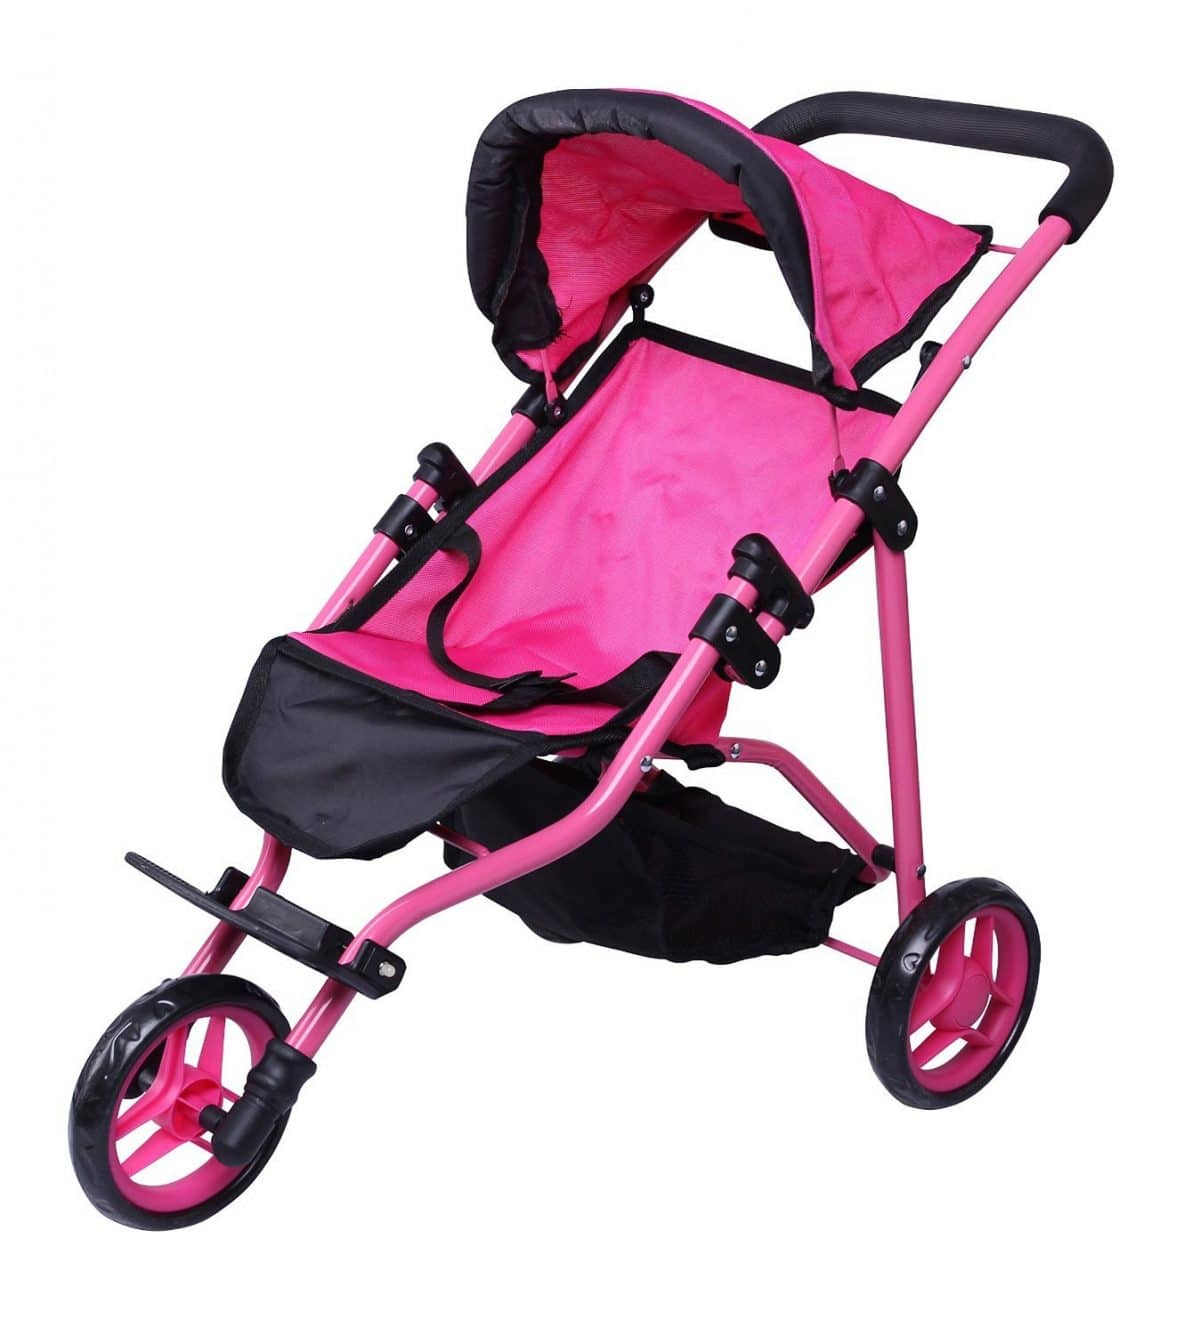 Foldable Doll Stroller Plastic Collection Toy With Sturdy Handle Children/'s Gift